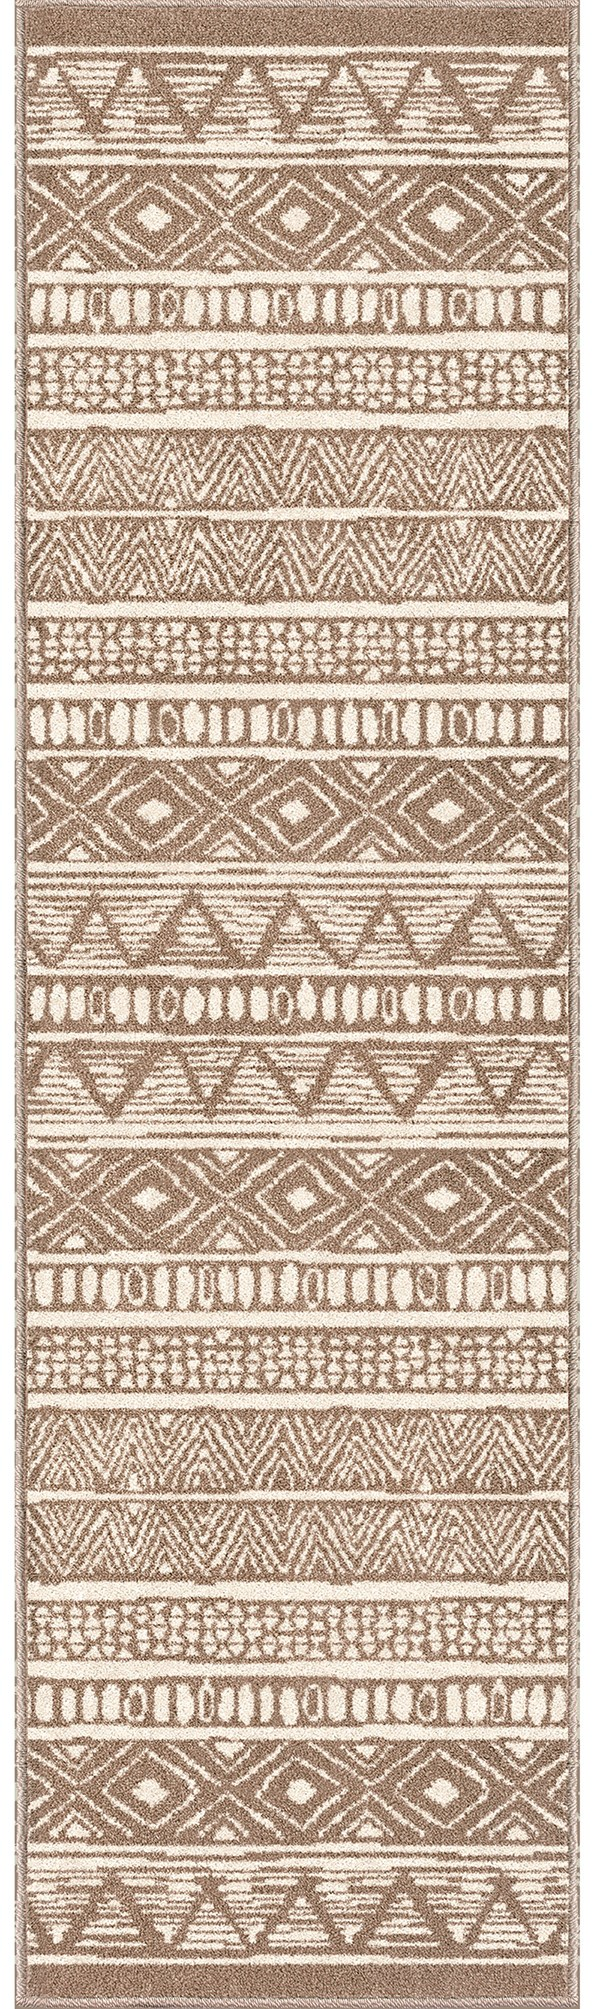 Beige Outdoor / Indoor Area Rug